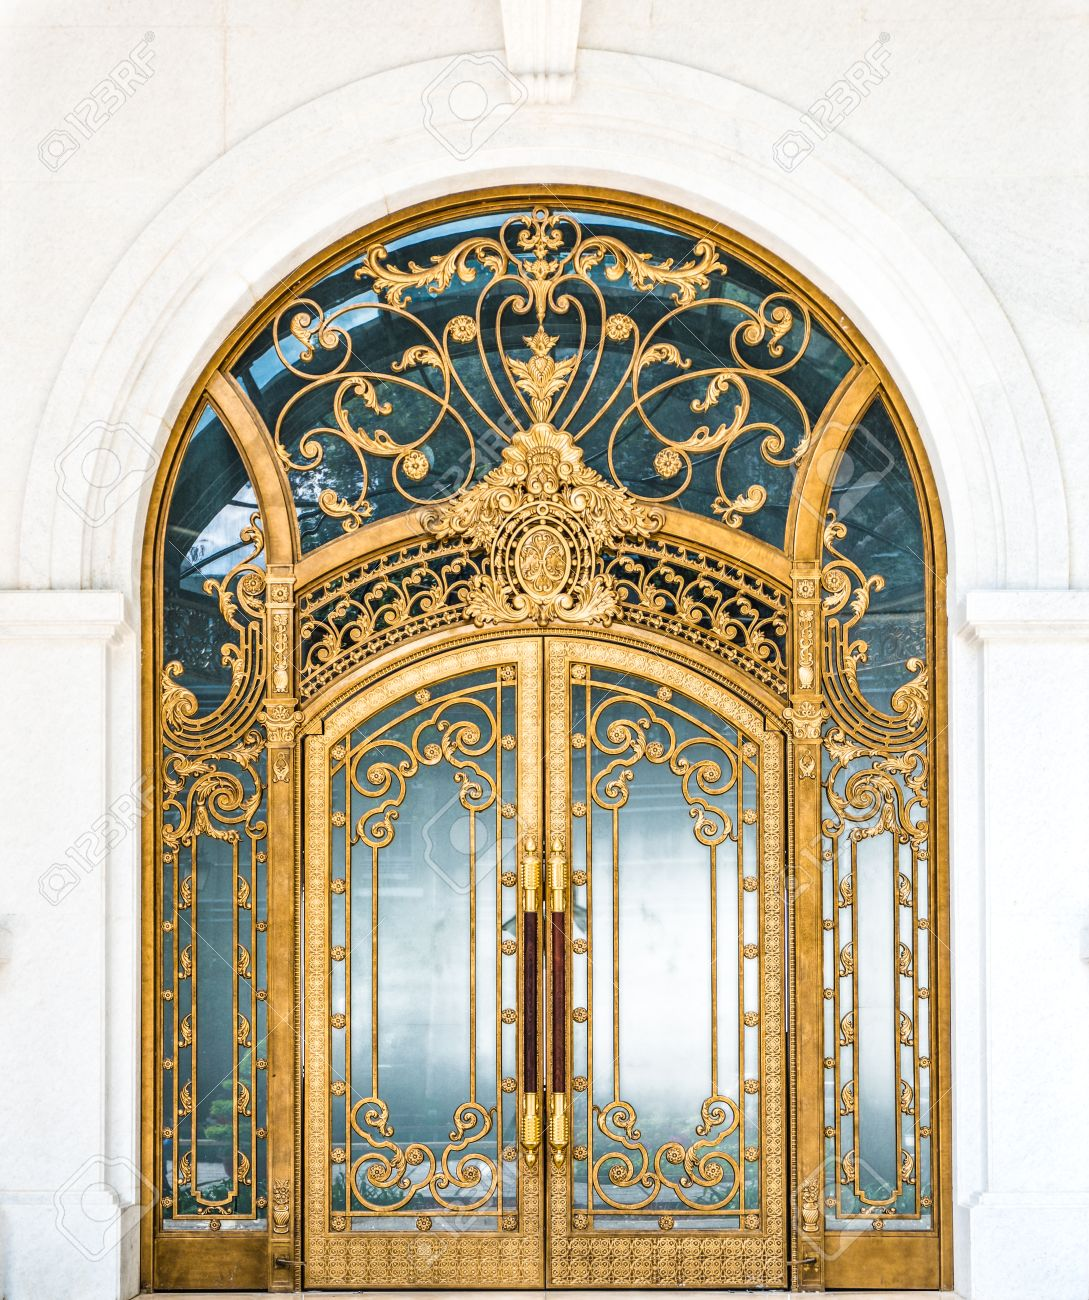 Door Made Of Wood Gold And Glass Reflecting Arch White